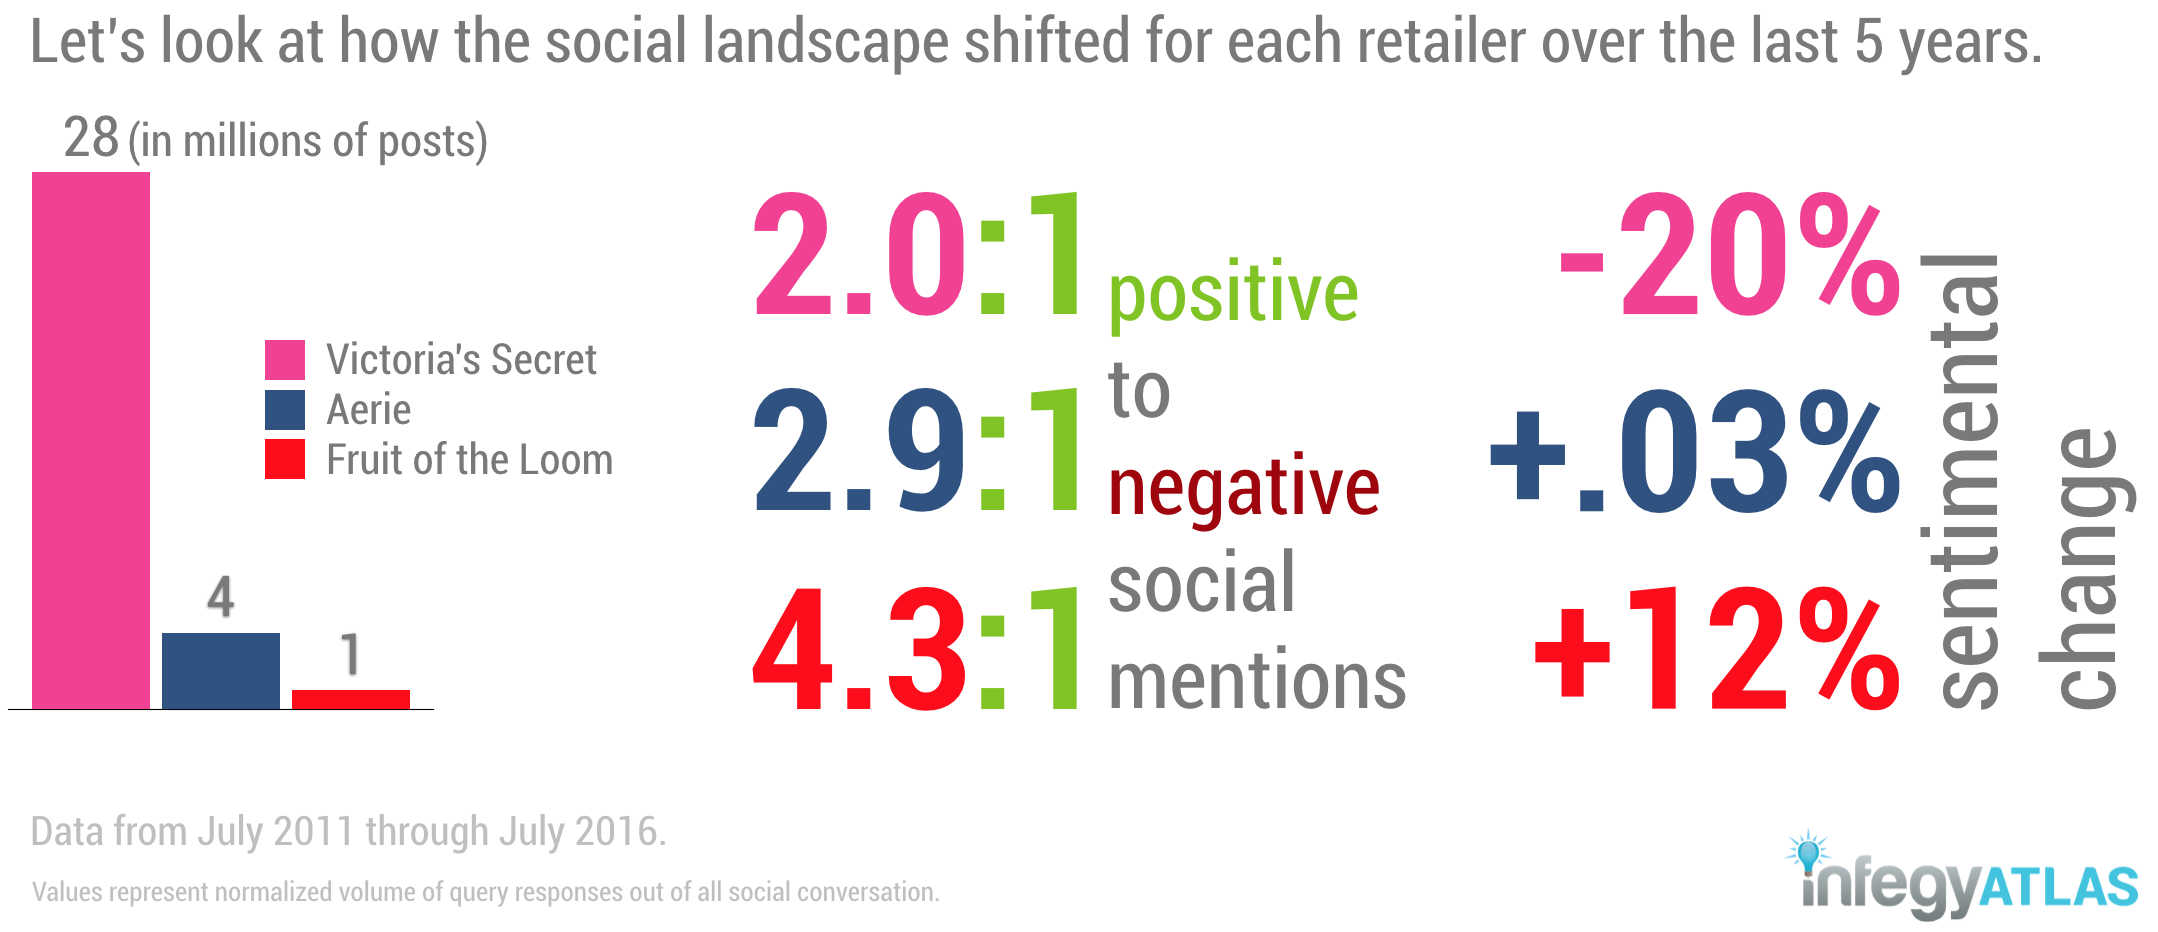 social-media-intelligence-victorias-secret-historical-data-brand-to-beat-sentiment.png